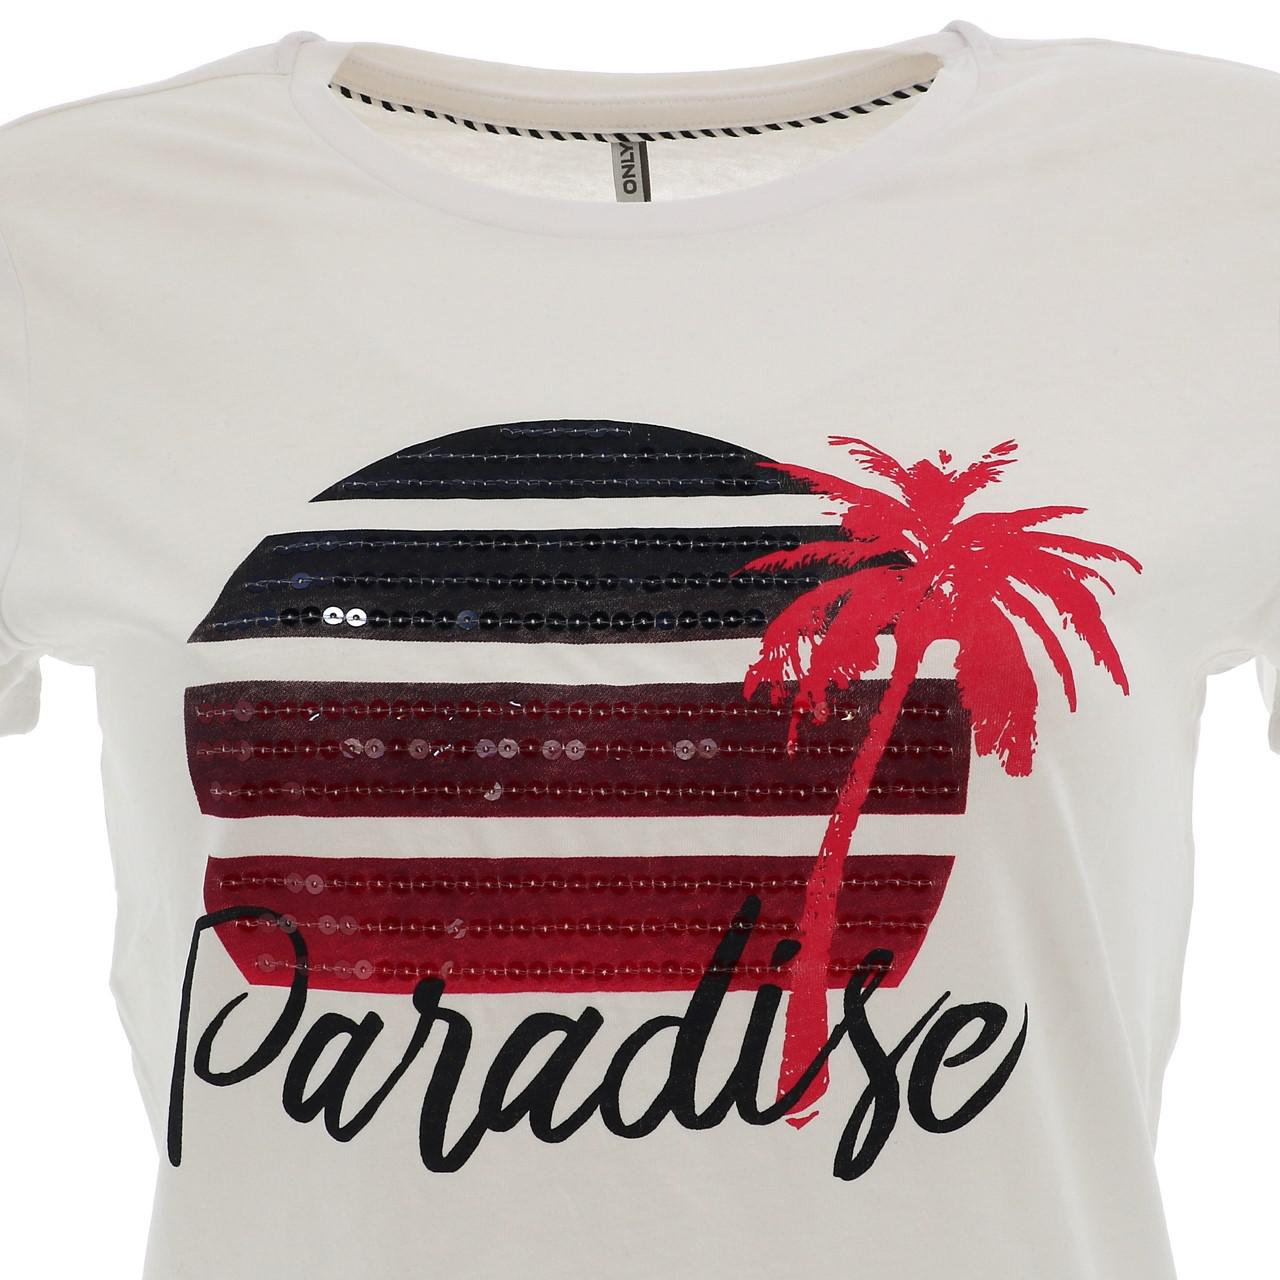 Tee-shirt-manches-courtes-Only-Paradise-white-tee-l-sp2-Blanc-17500-Neuf miniature 2